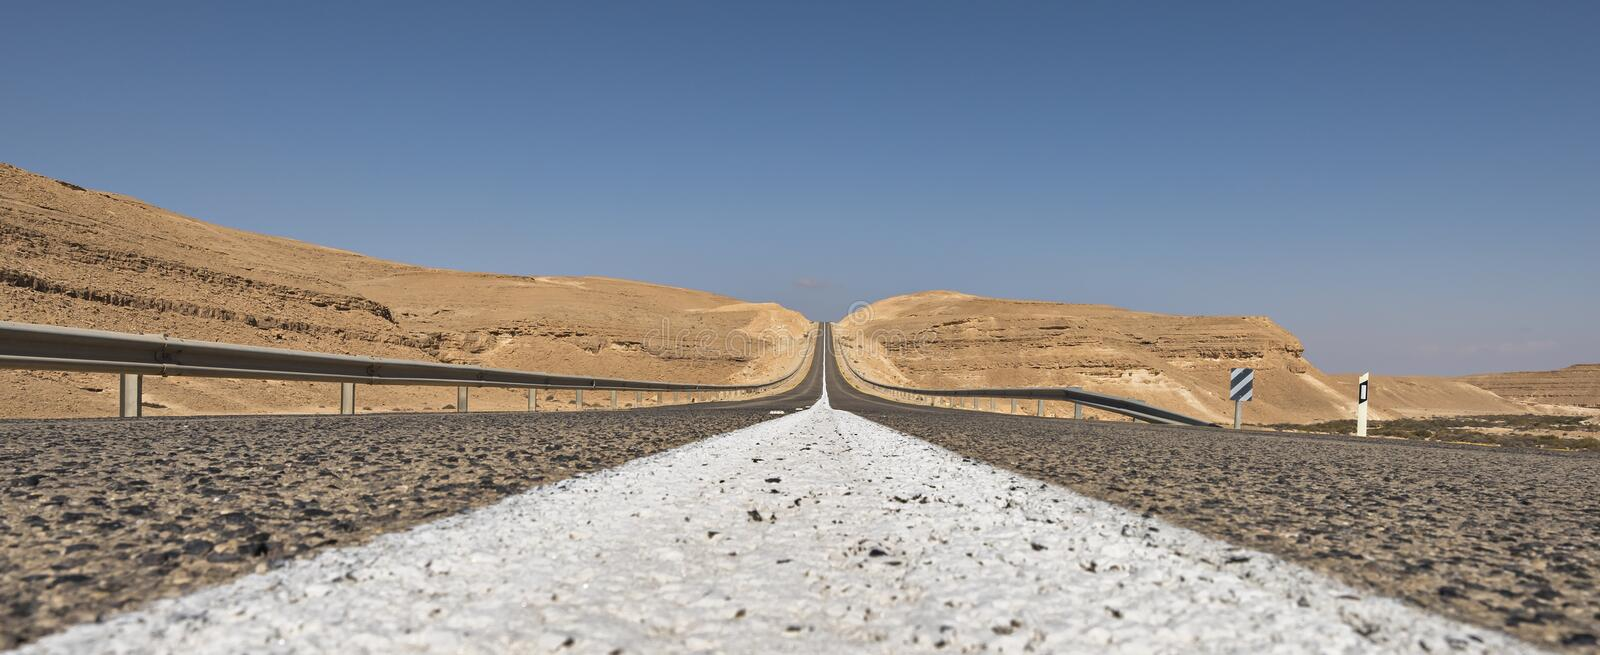 Road in desert of the Negev, Israel stock photo